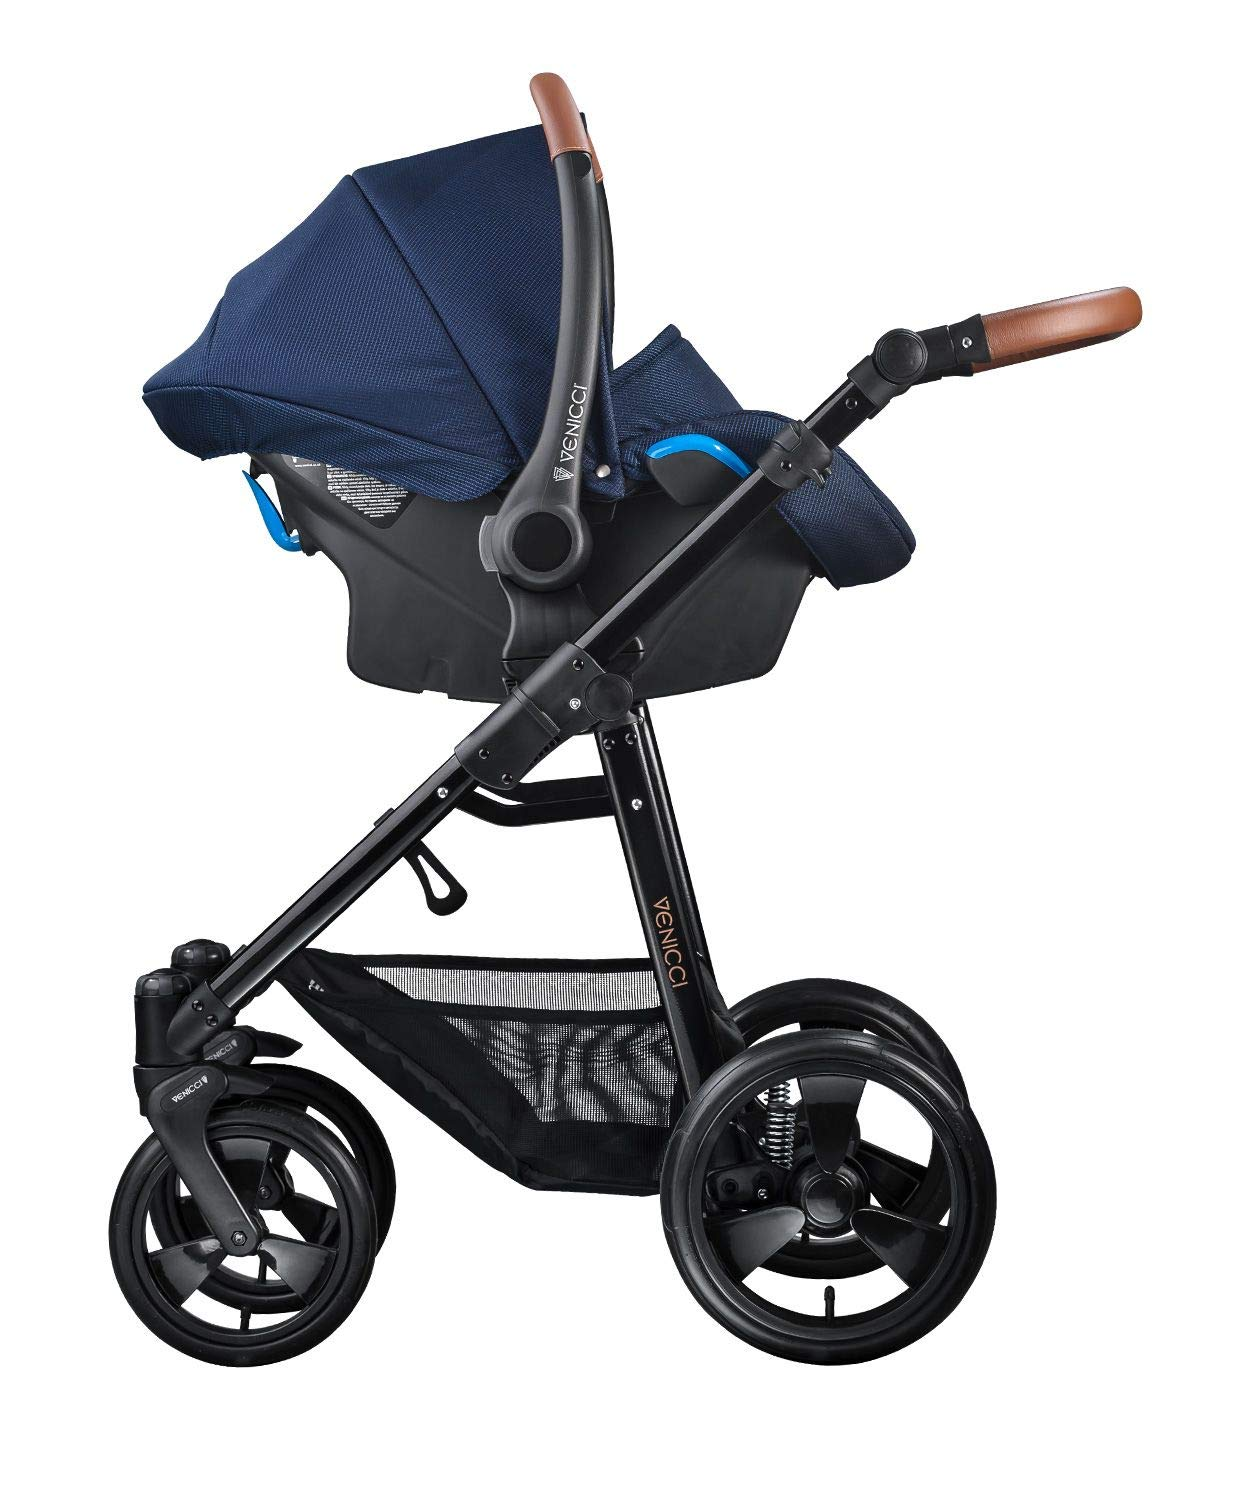 Venicci Gusto 3-in-1 Travel System - Navy - with Carrycot + Car Seat + Changing Bag + Footmuff + Raincover + Mosquito Net + 5-Point Harness and UV 50+ Fabric + Car Seat Adapters + Cup Holder  3 in 1 Travel System with included Group 0+ Car Seat Suitable for your baby from birth onwards 5-point harness to enhance the safety of your child 4